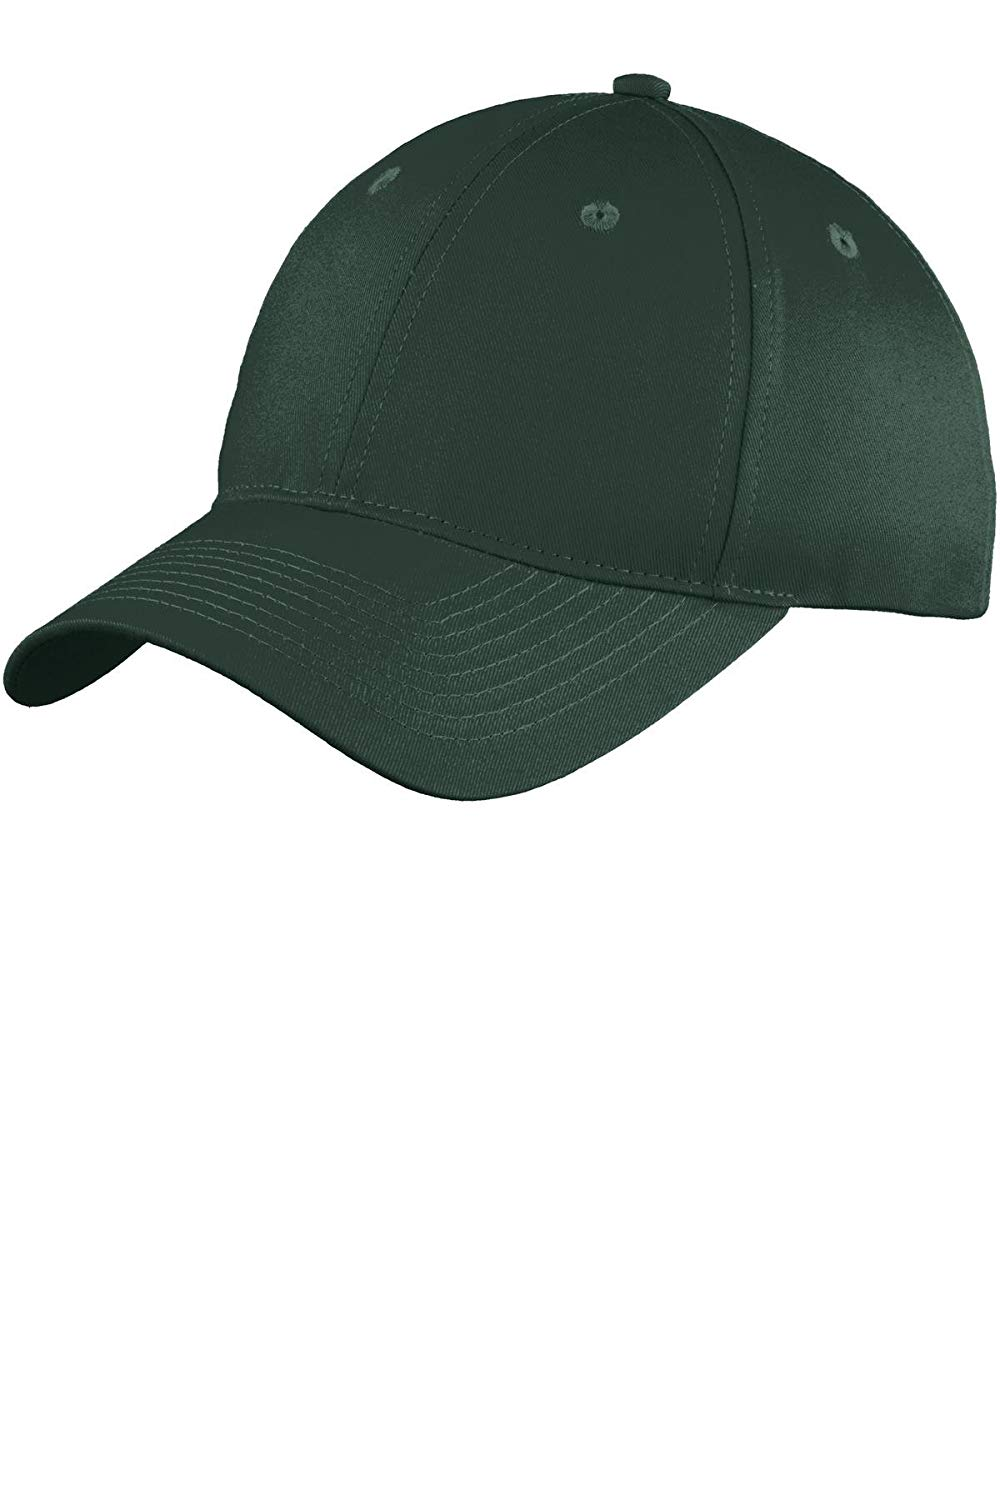 3203bbd24 Get Quotations · Port & Company YC914 Boys' Six-Panel Unstructured Twill Cap  Hunter ...